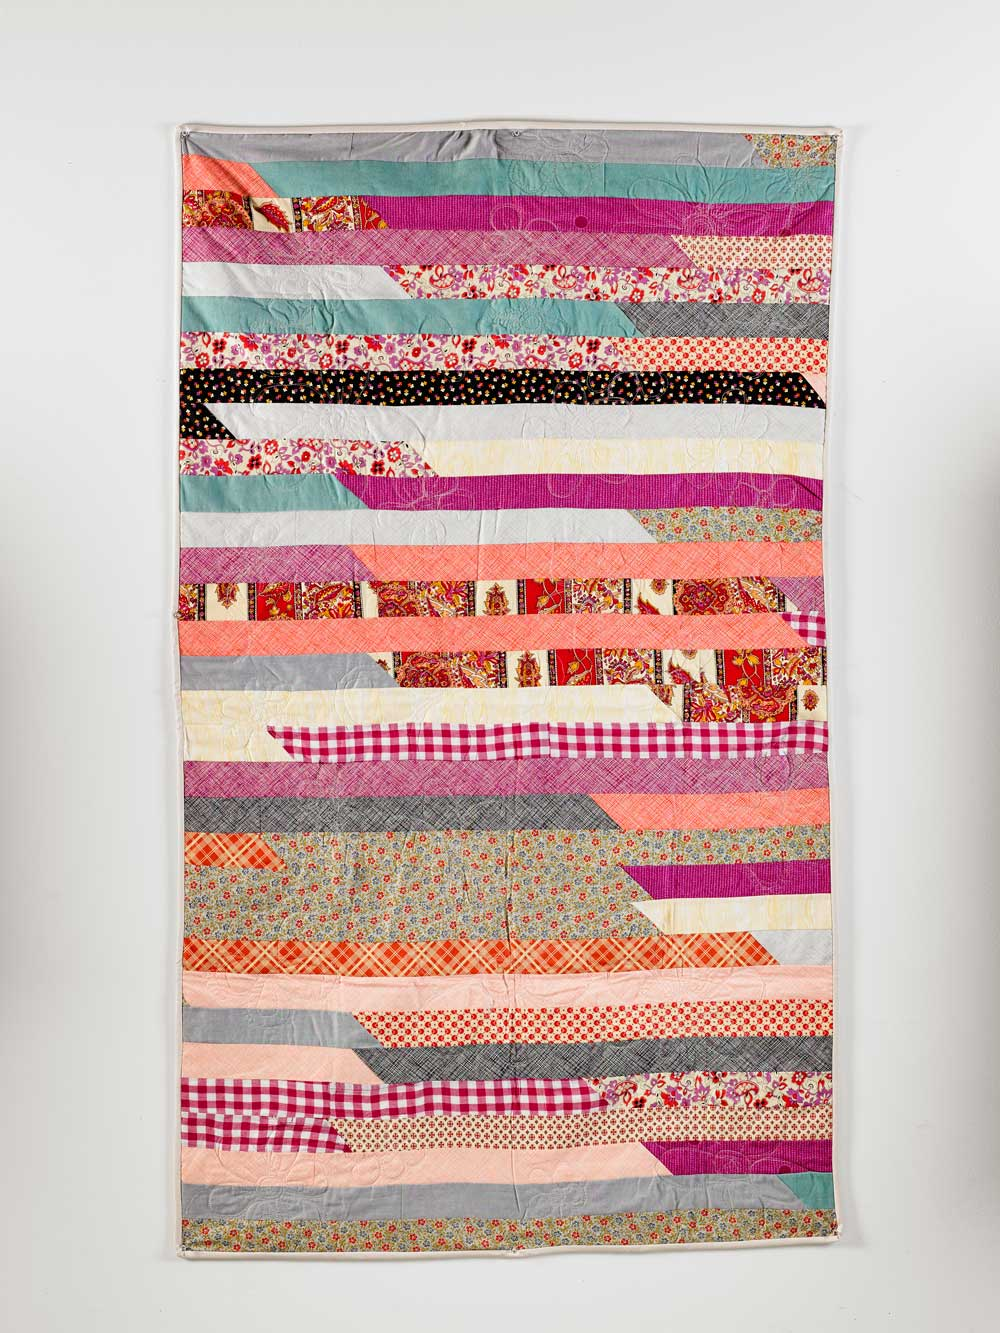 How To Sew A Jelly Roll Race Quilt Wise Craft Handmade